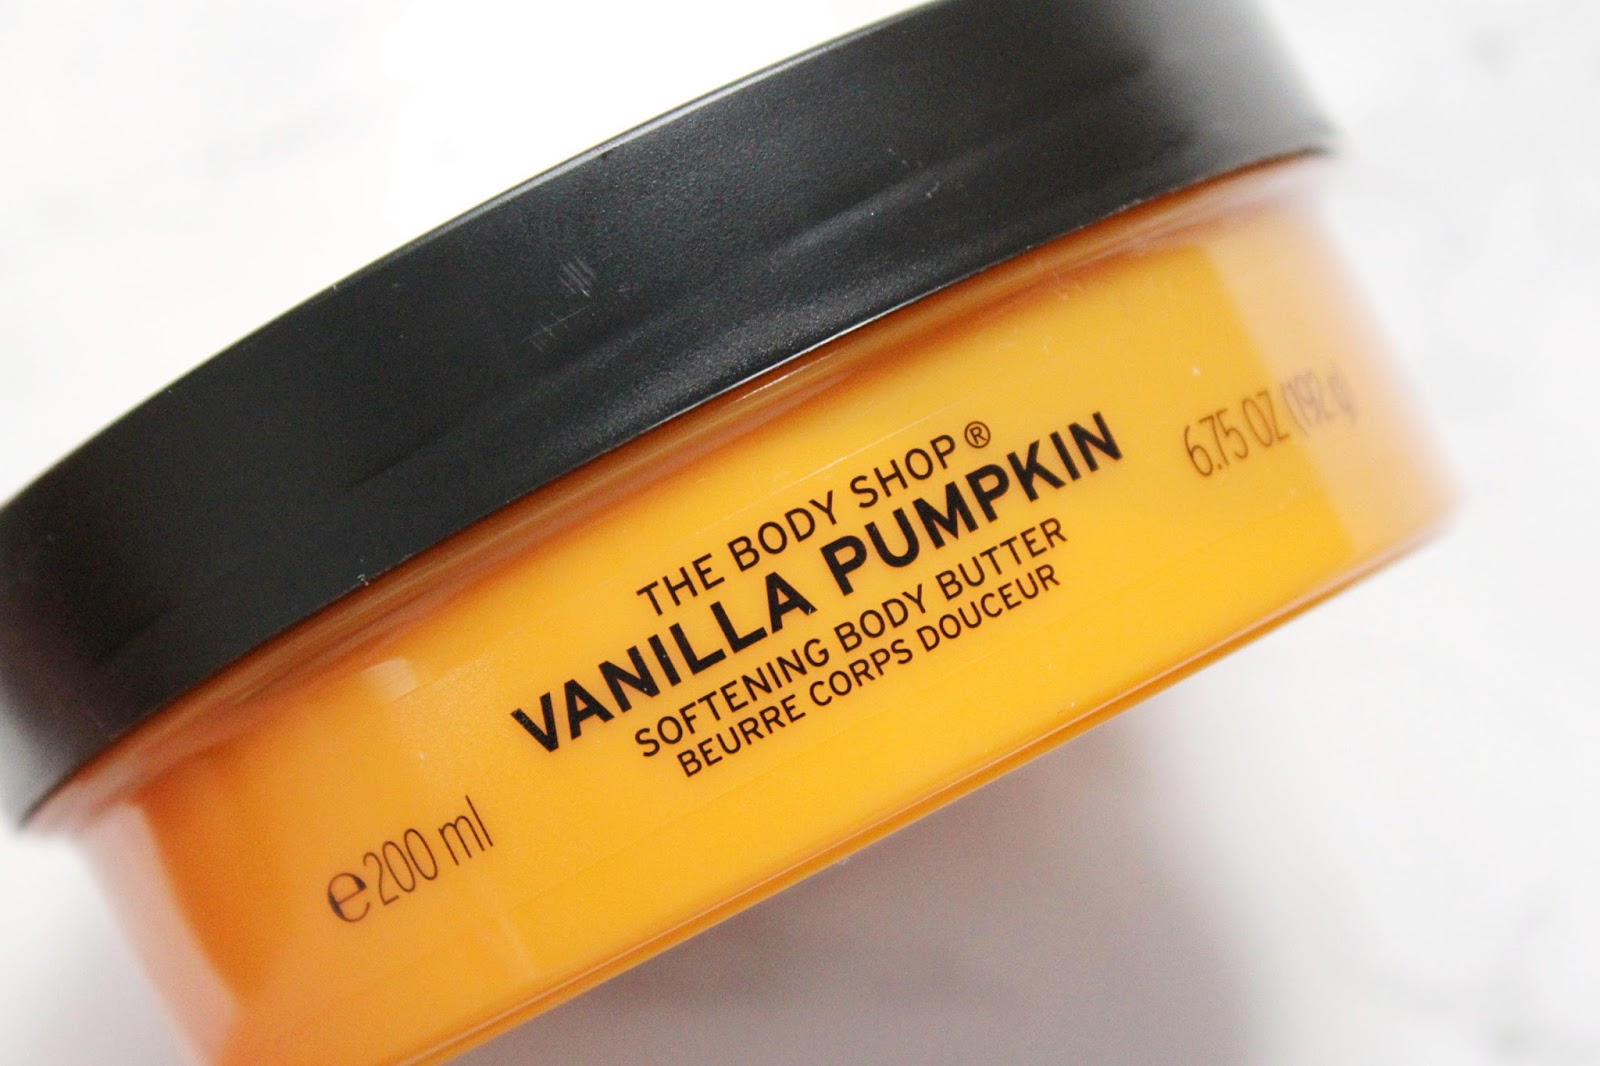 The Body Shop Pumpkin Vanilla Body Butter